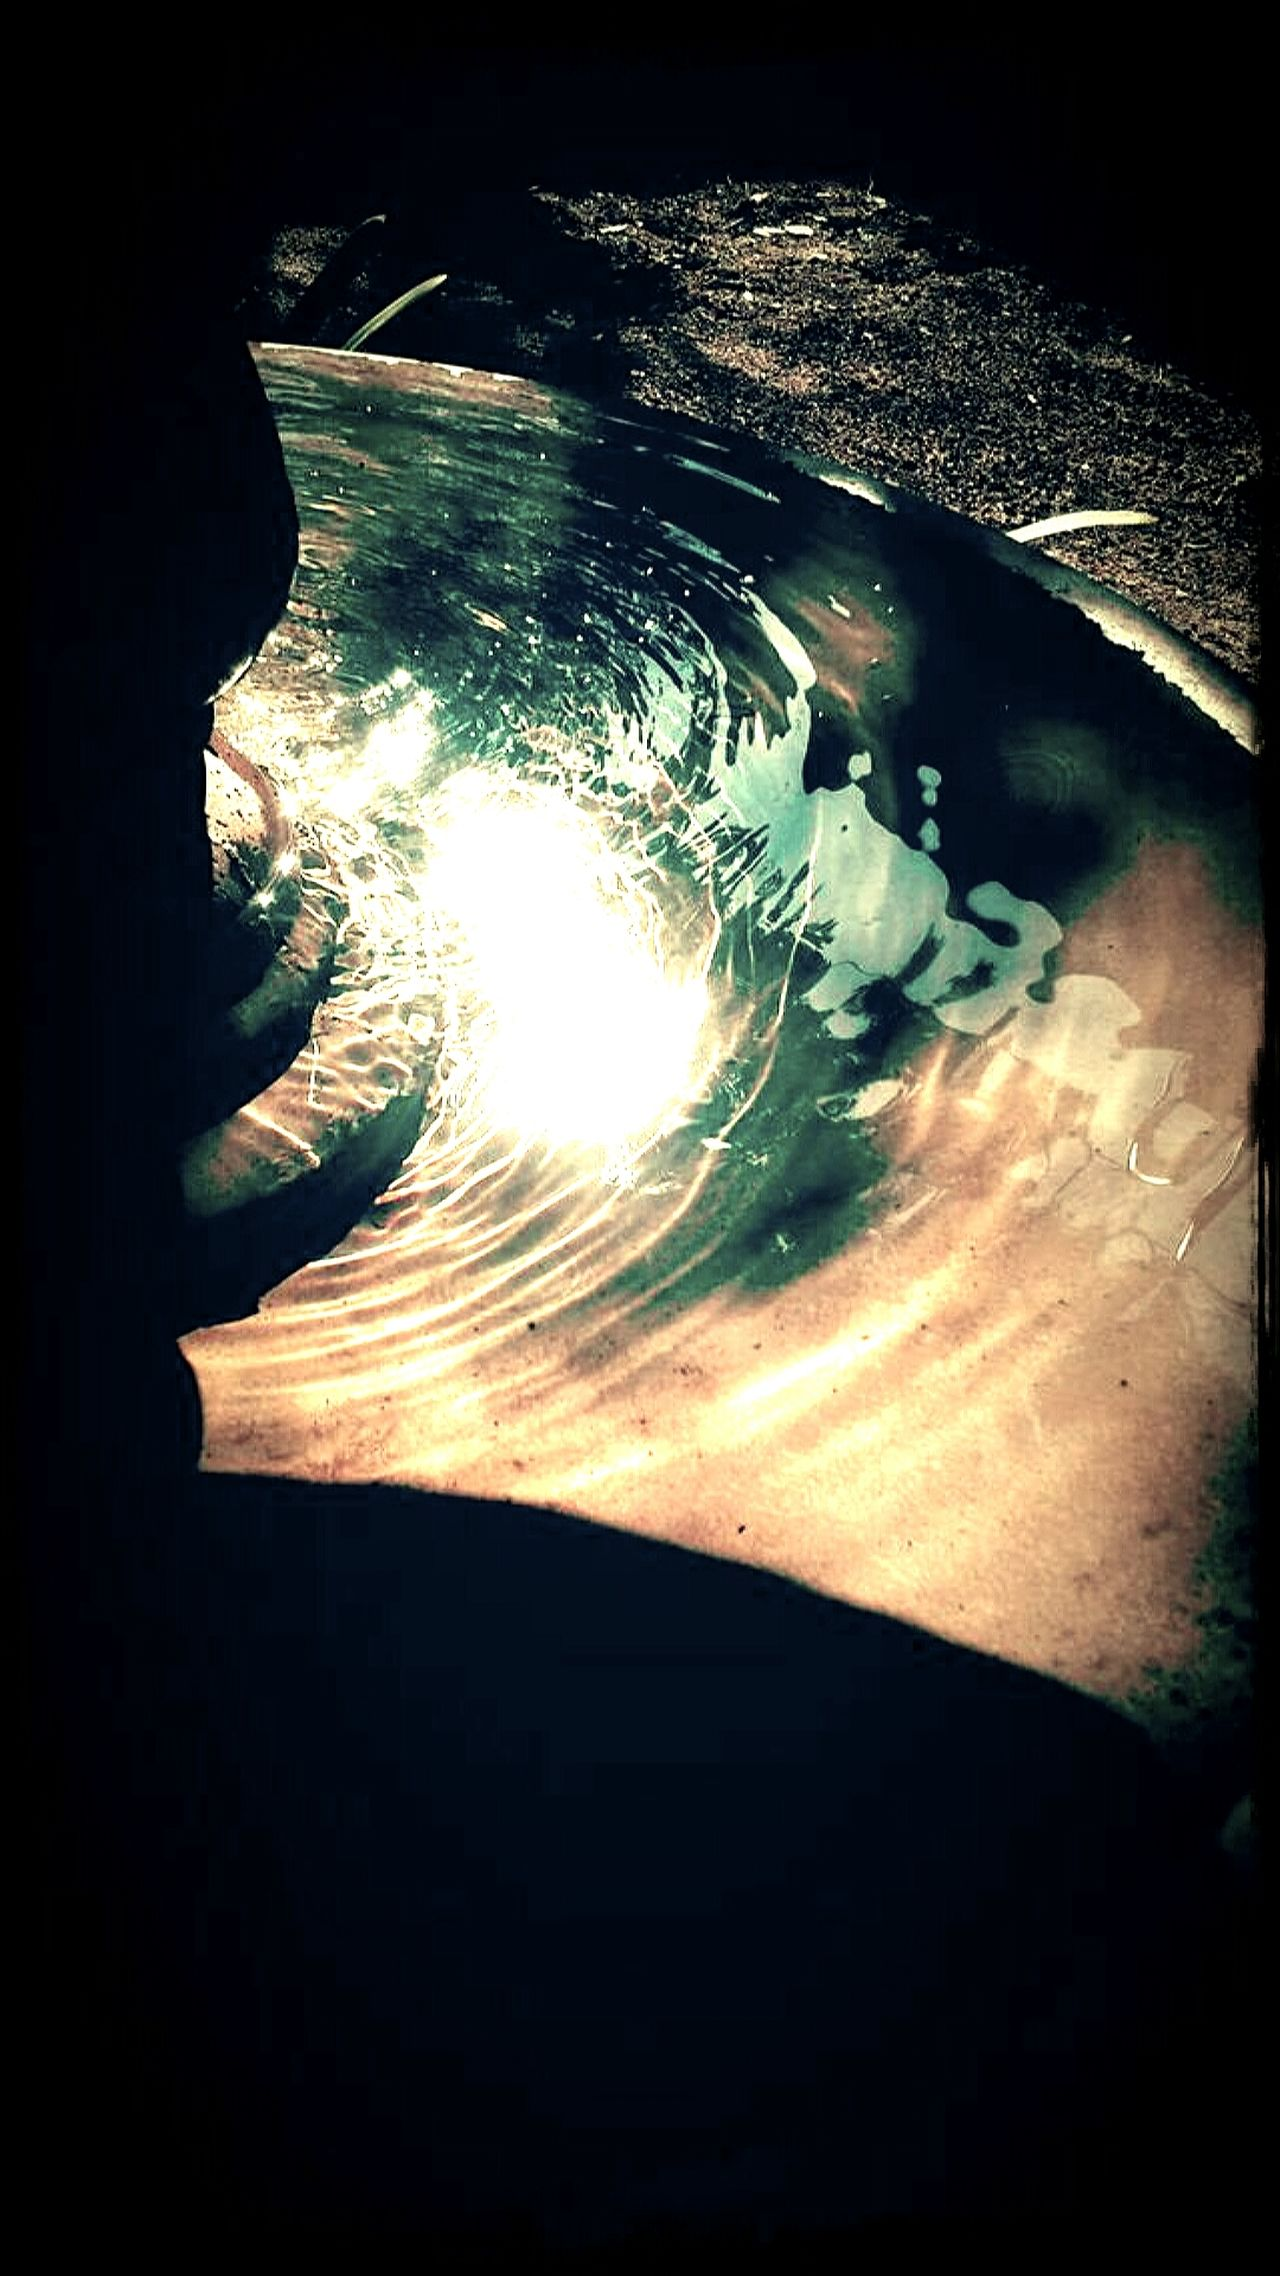 Ripple Effect Water Reflections Waterdrops Bird Bath EyeEm Best Edits EyeEm Gallery